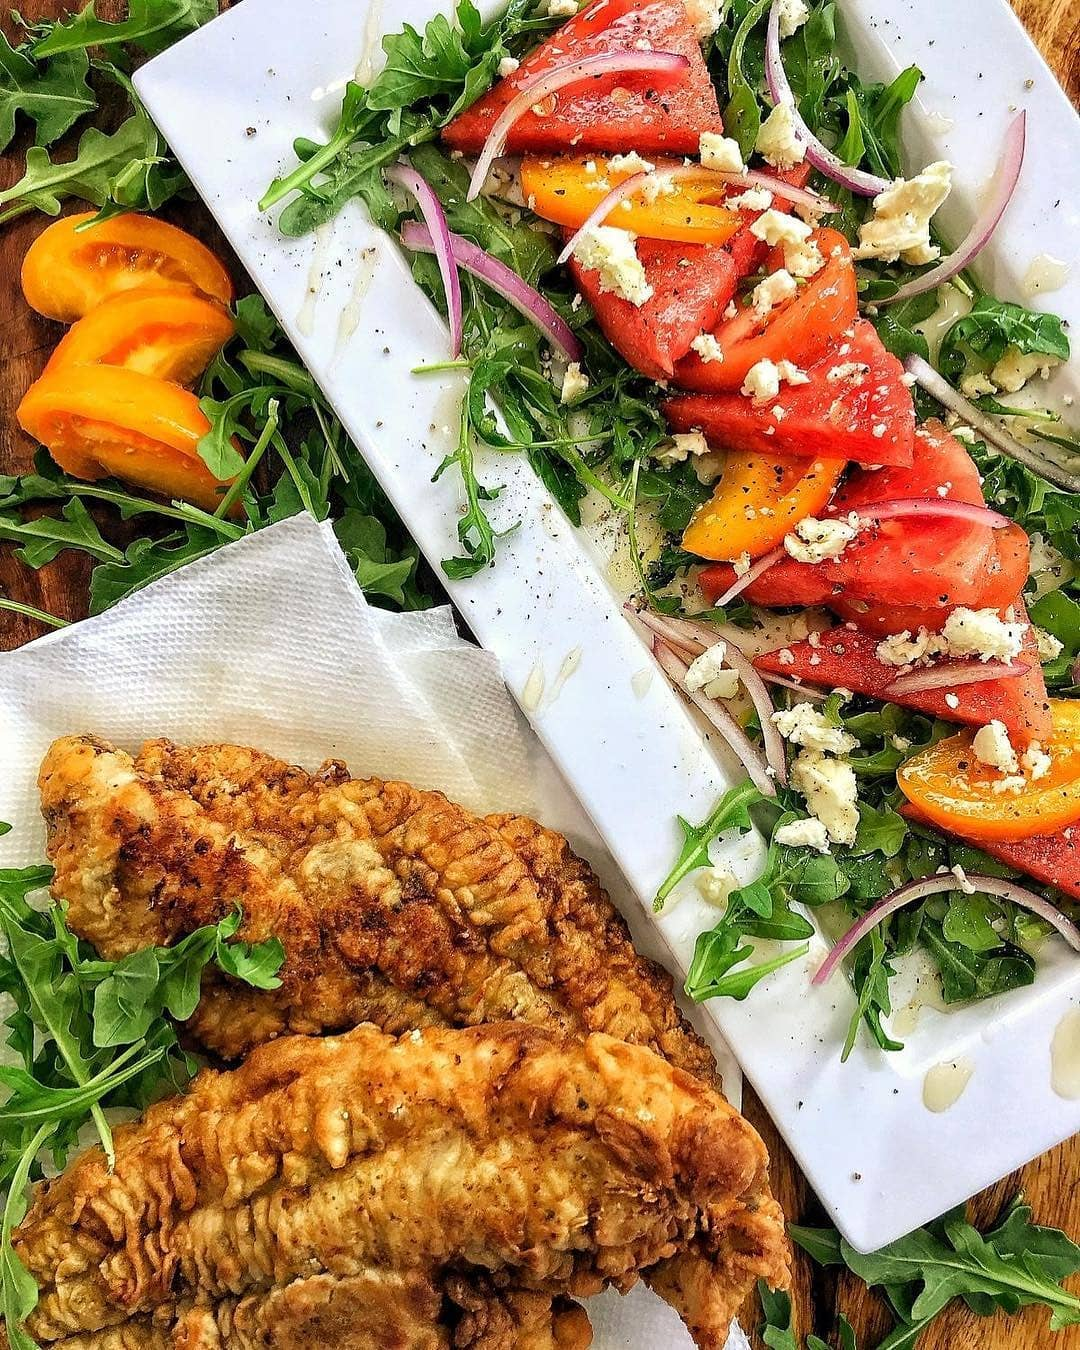 Crispy Catfish with Watermelon Salad